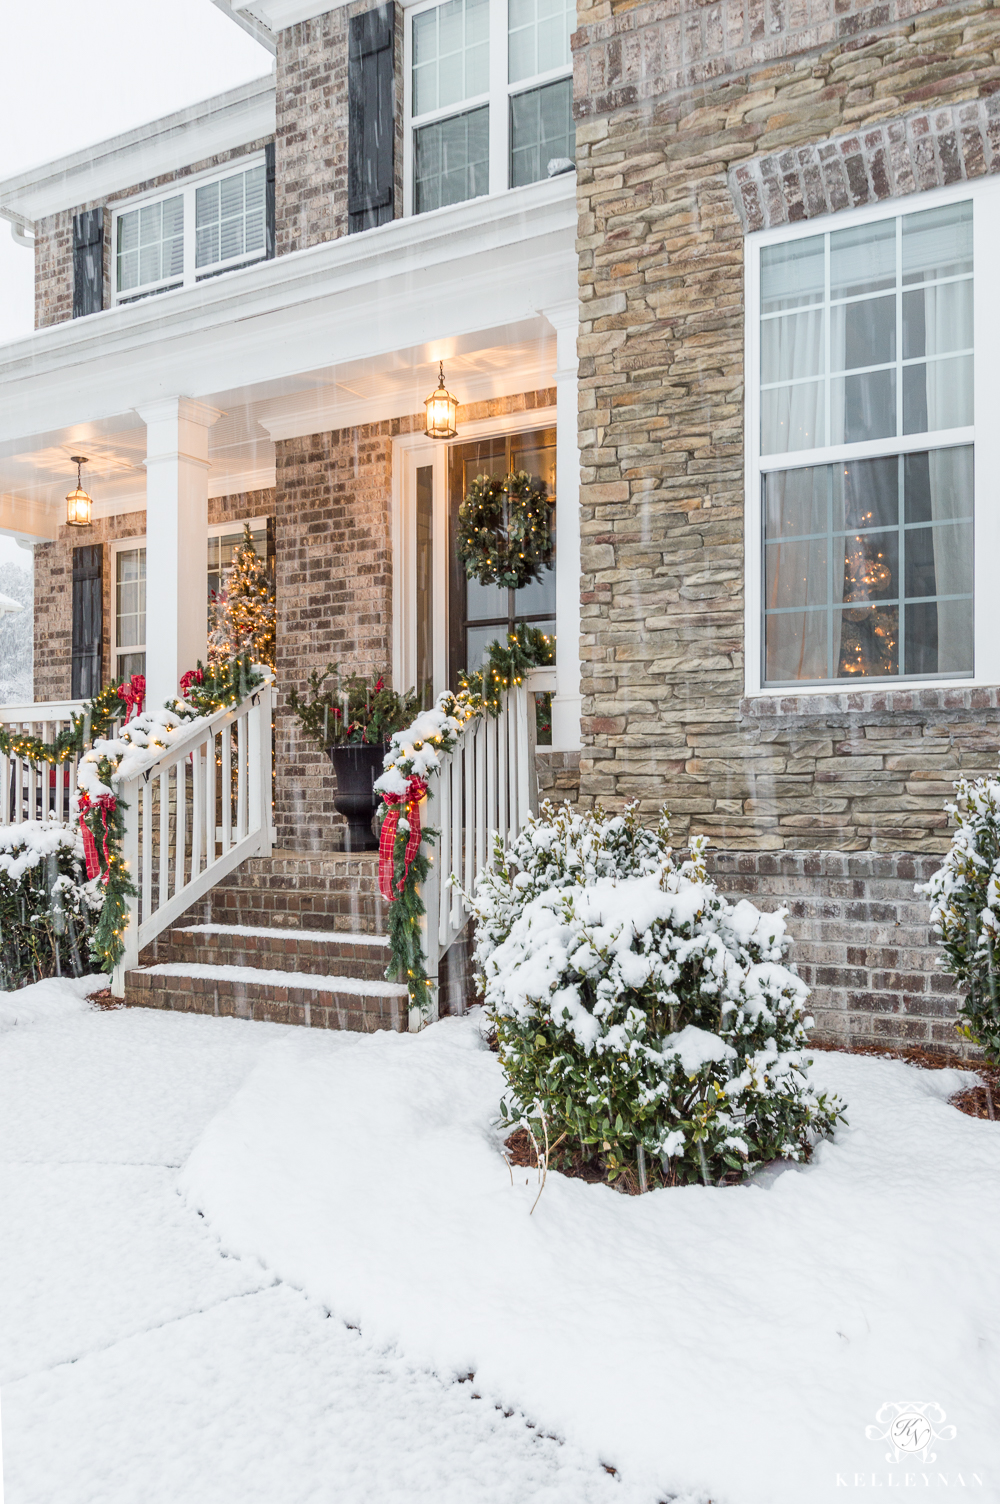 Snowy Front Porch Decorated for Christmas